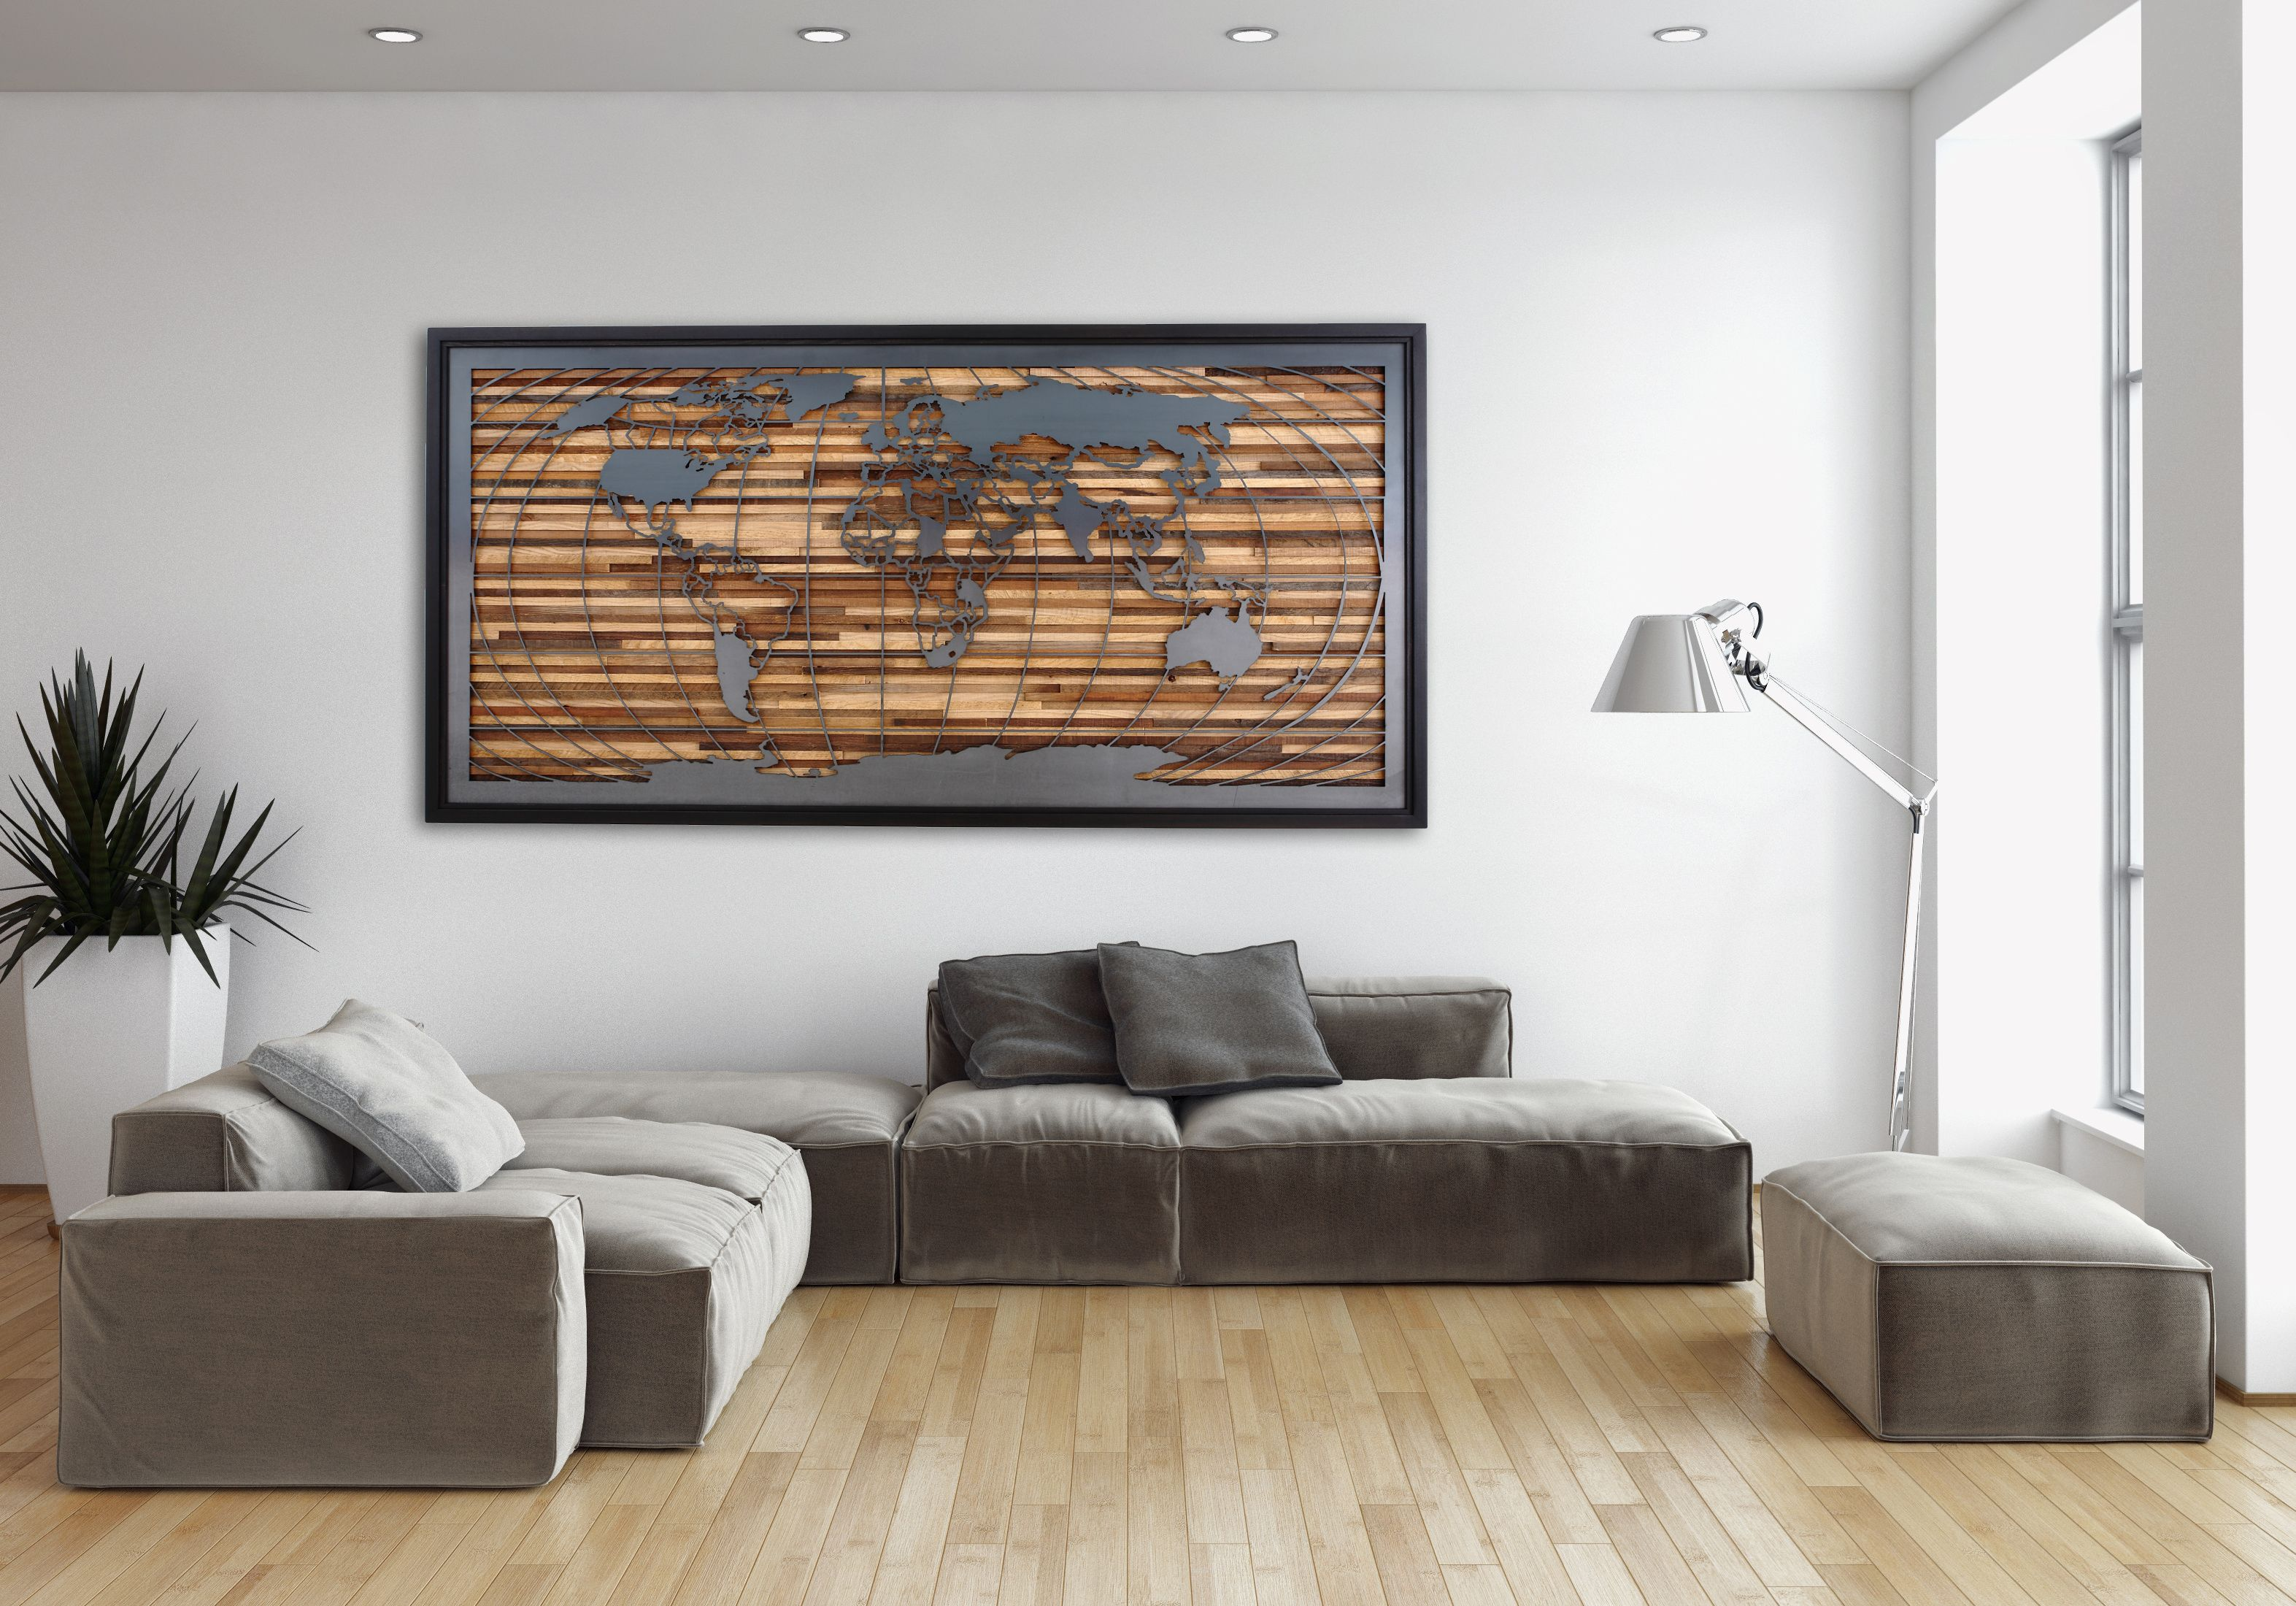 Custom made world map artwork made of old barnwood and natural steel custom made world map artwork made of old barnwood and natural steel 48 by carpentercraig custommade gumiabroncs Gallery